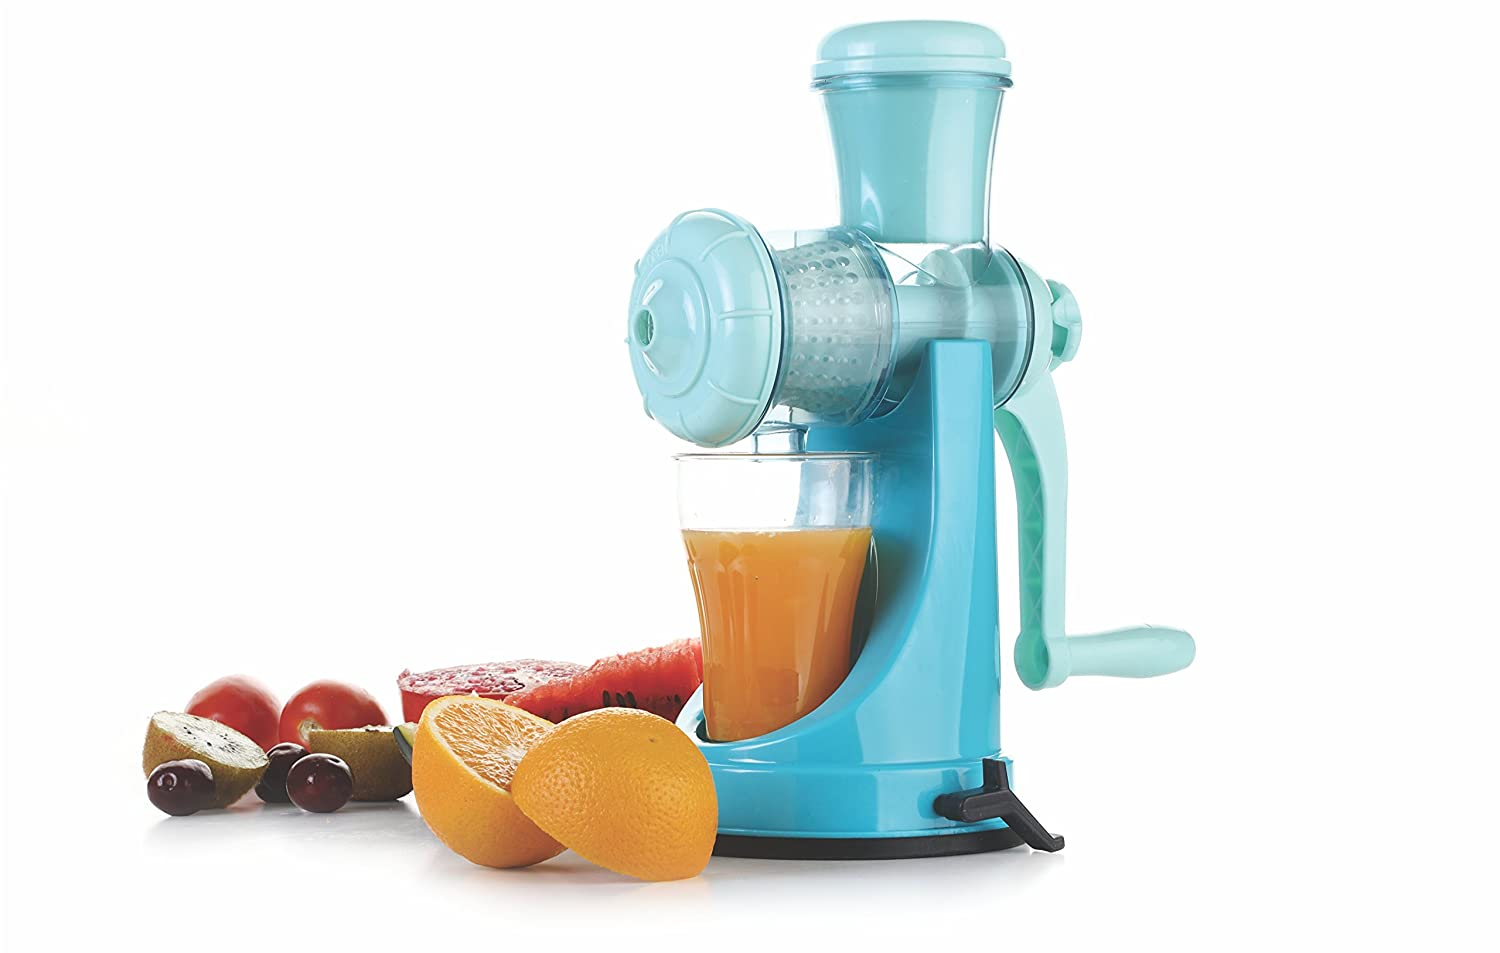 Manual juicer. Useful device for home 99